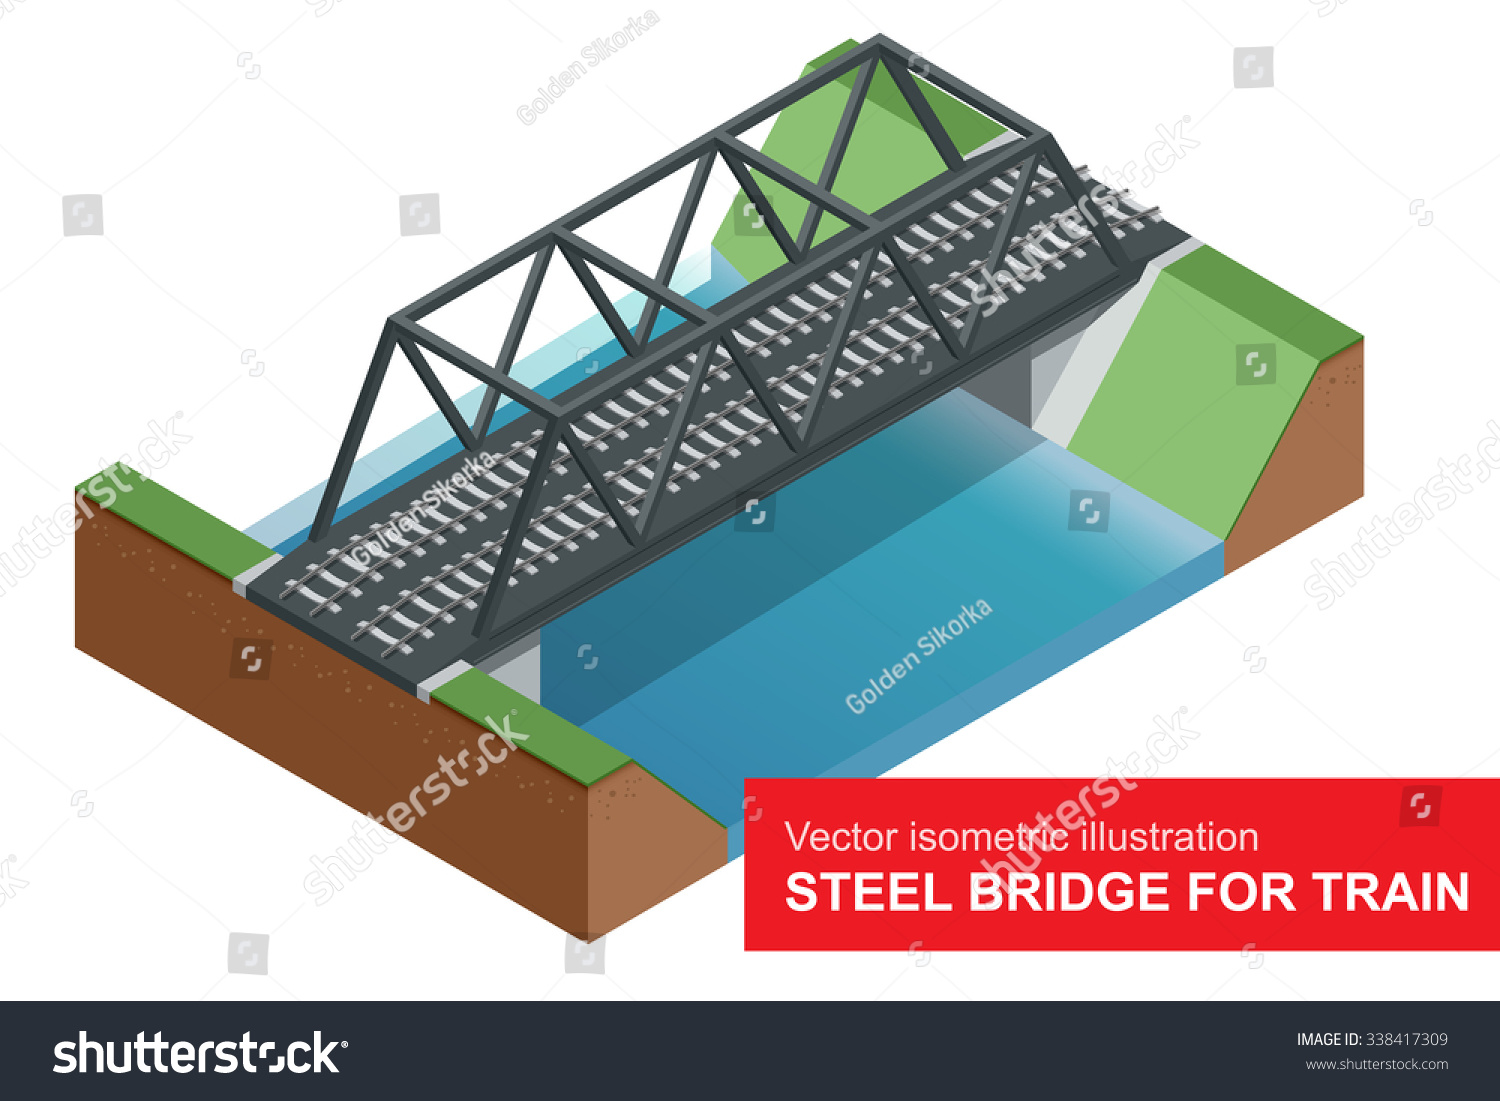 Vector Isometric Illustration Steel Bridge Train Stock Truss Diagram Aircraft Design Software Of For Vehicles Designed To Carry Large Numbers